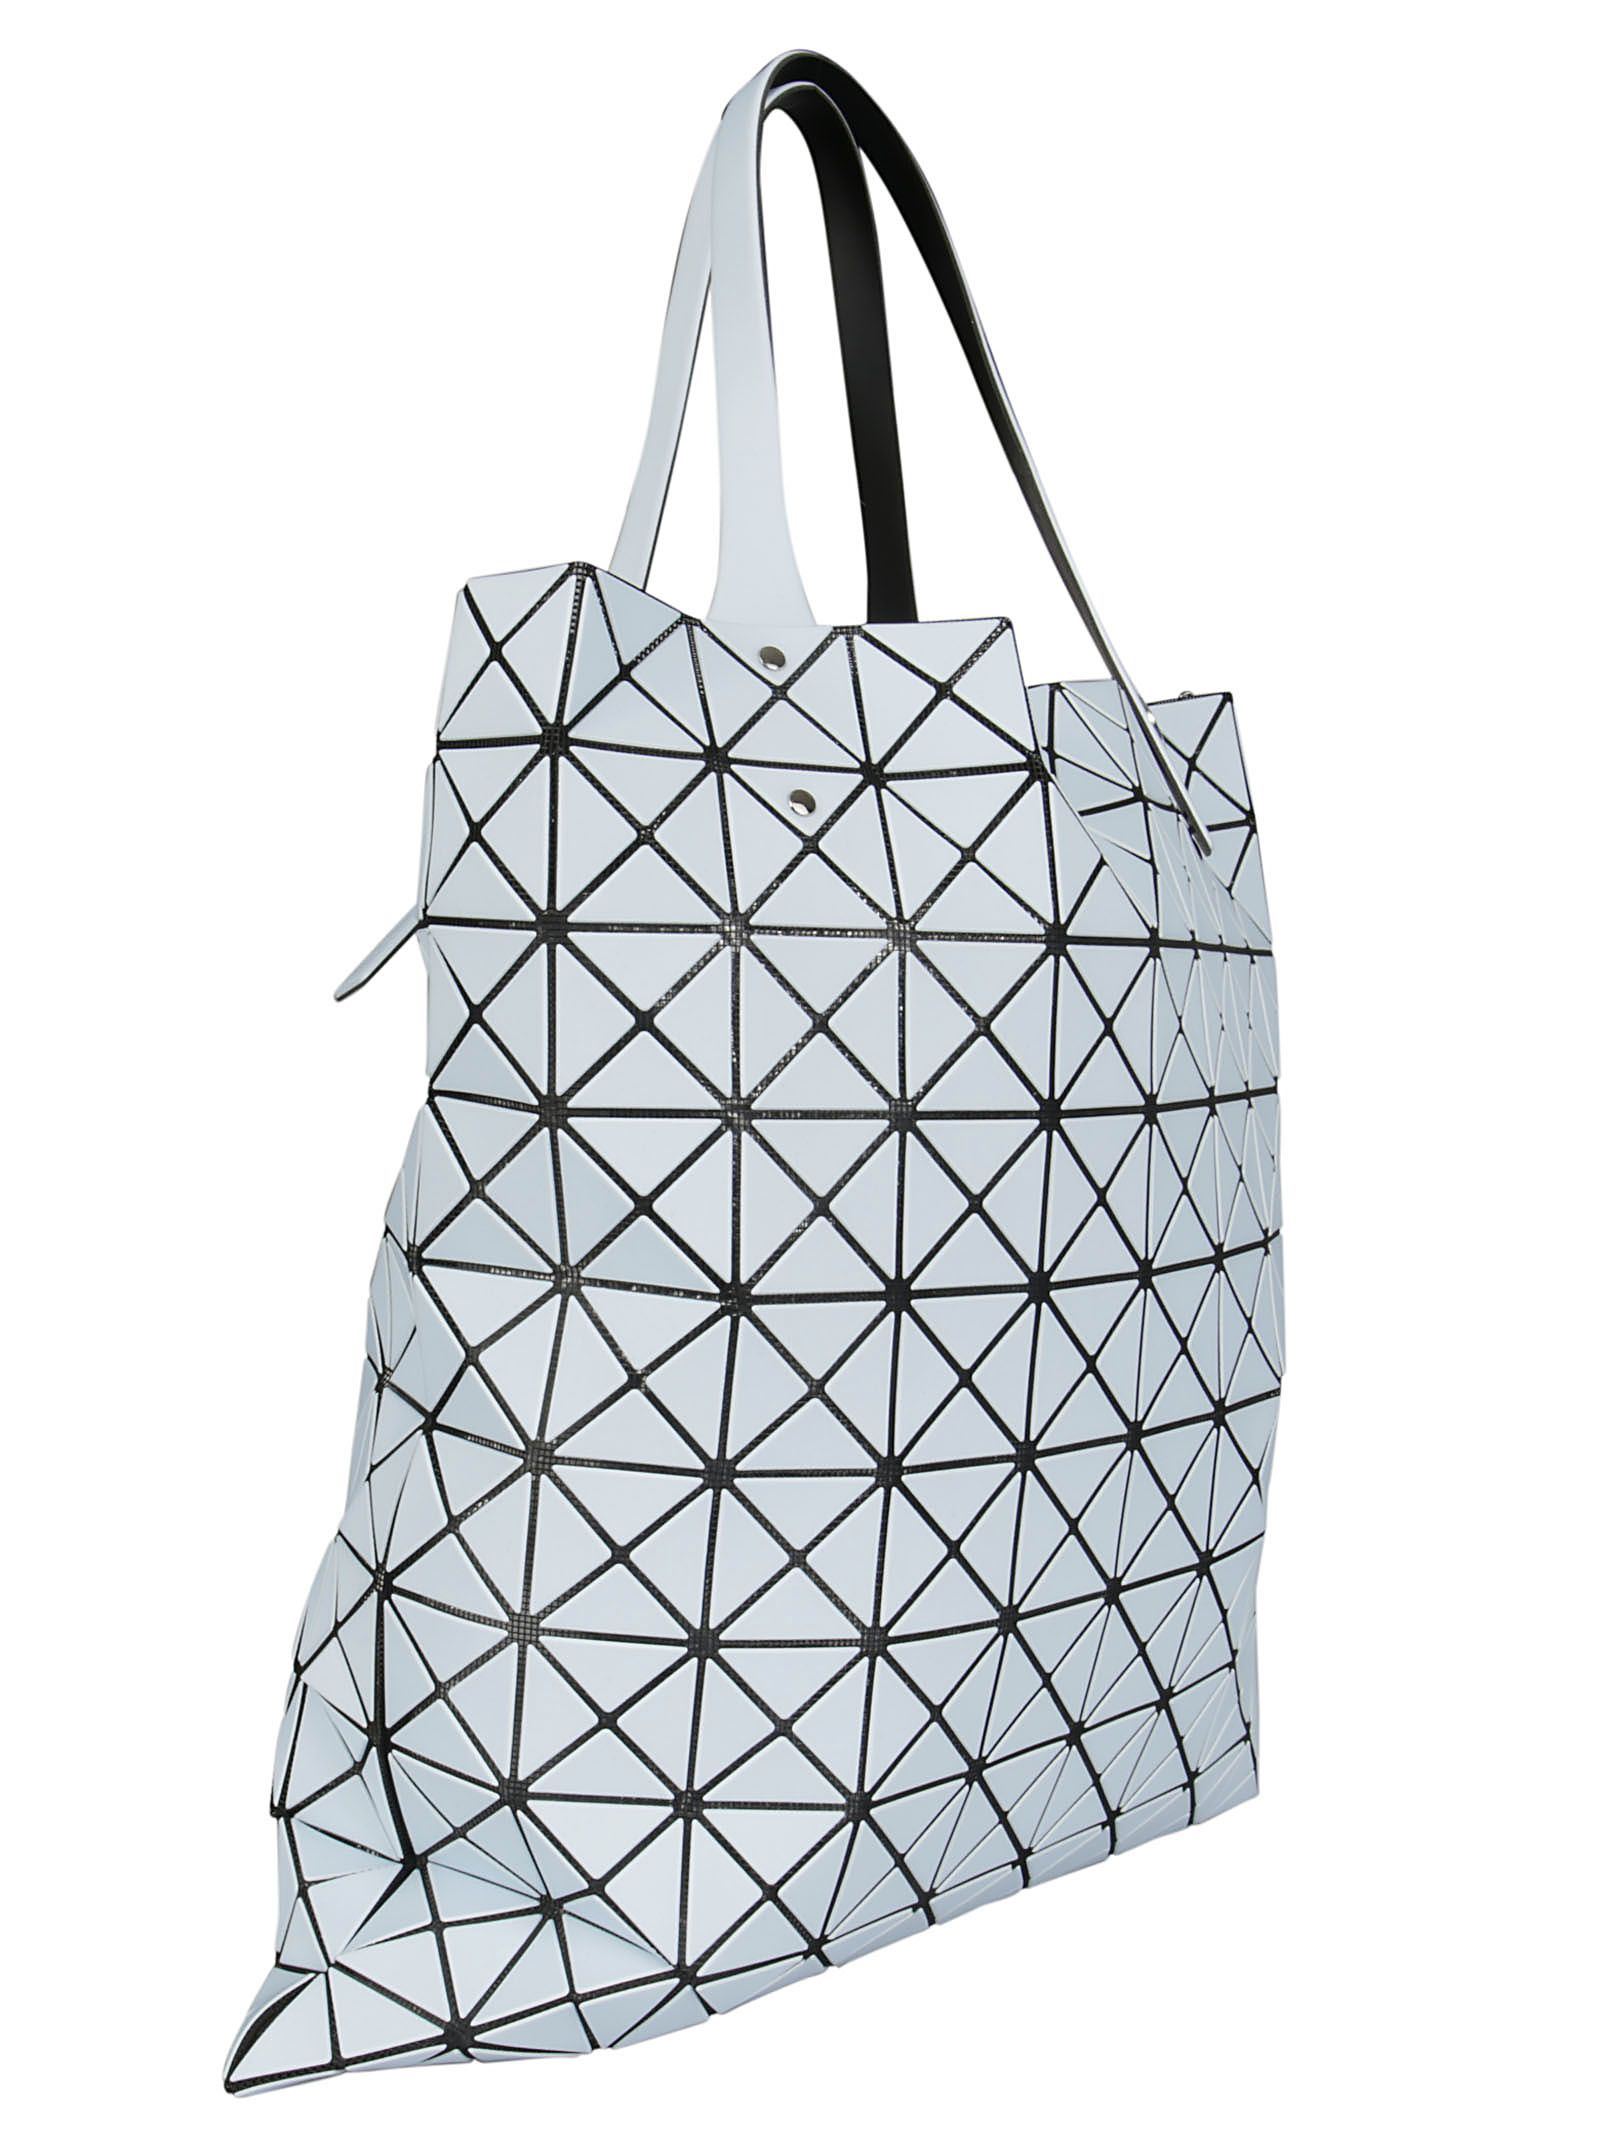 c7763e400063 Bao Bao Issey Miyake Bao Bao Issey Miyake Prism Frost Tote - Light ...